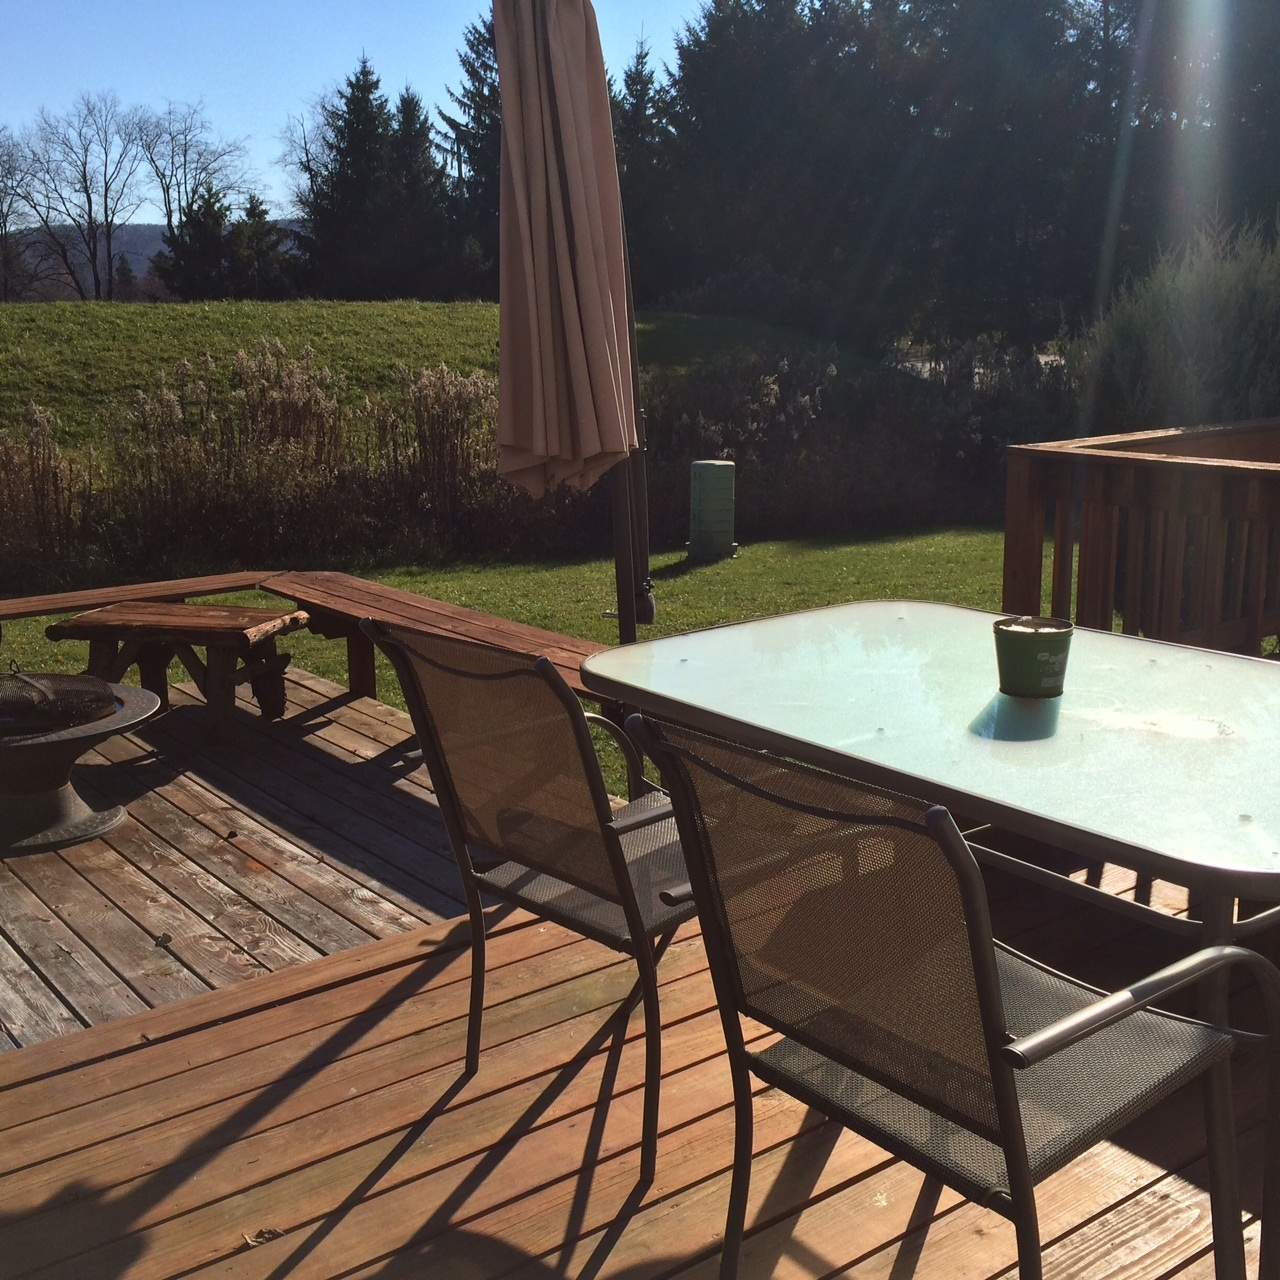 26 Pinetree: 3 Bedroom Vacation Townhouse Rental